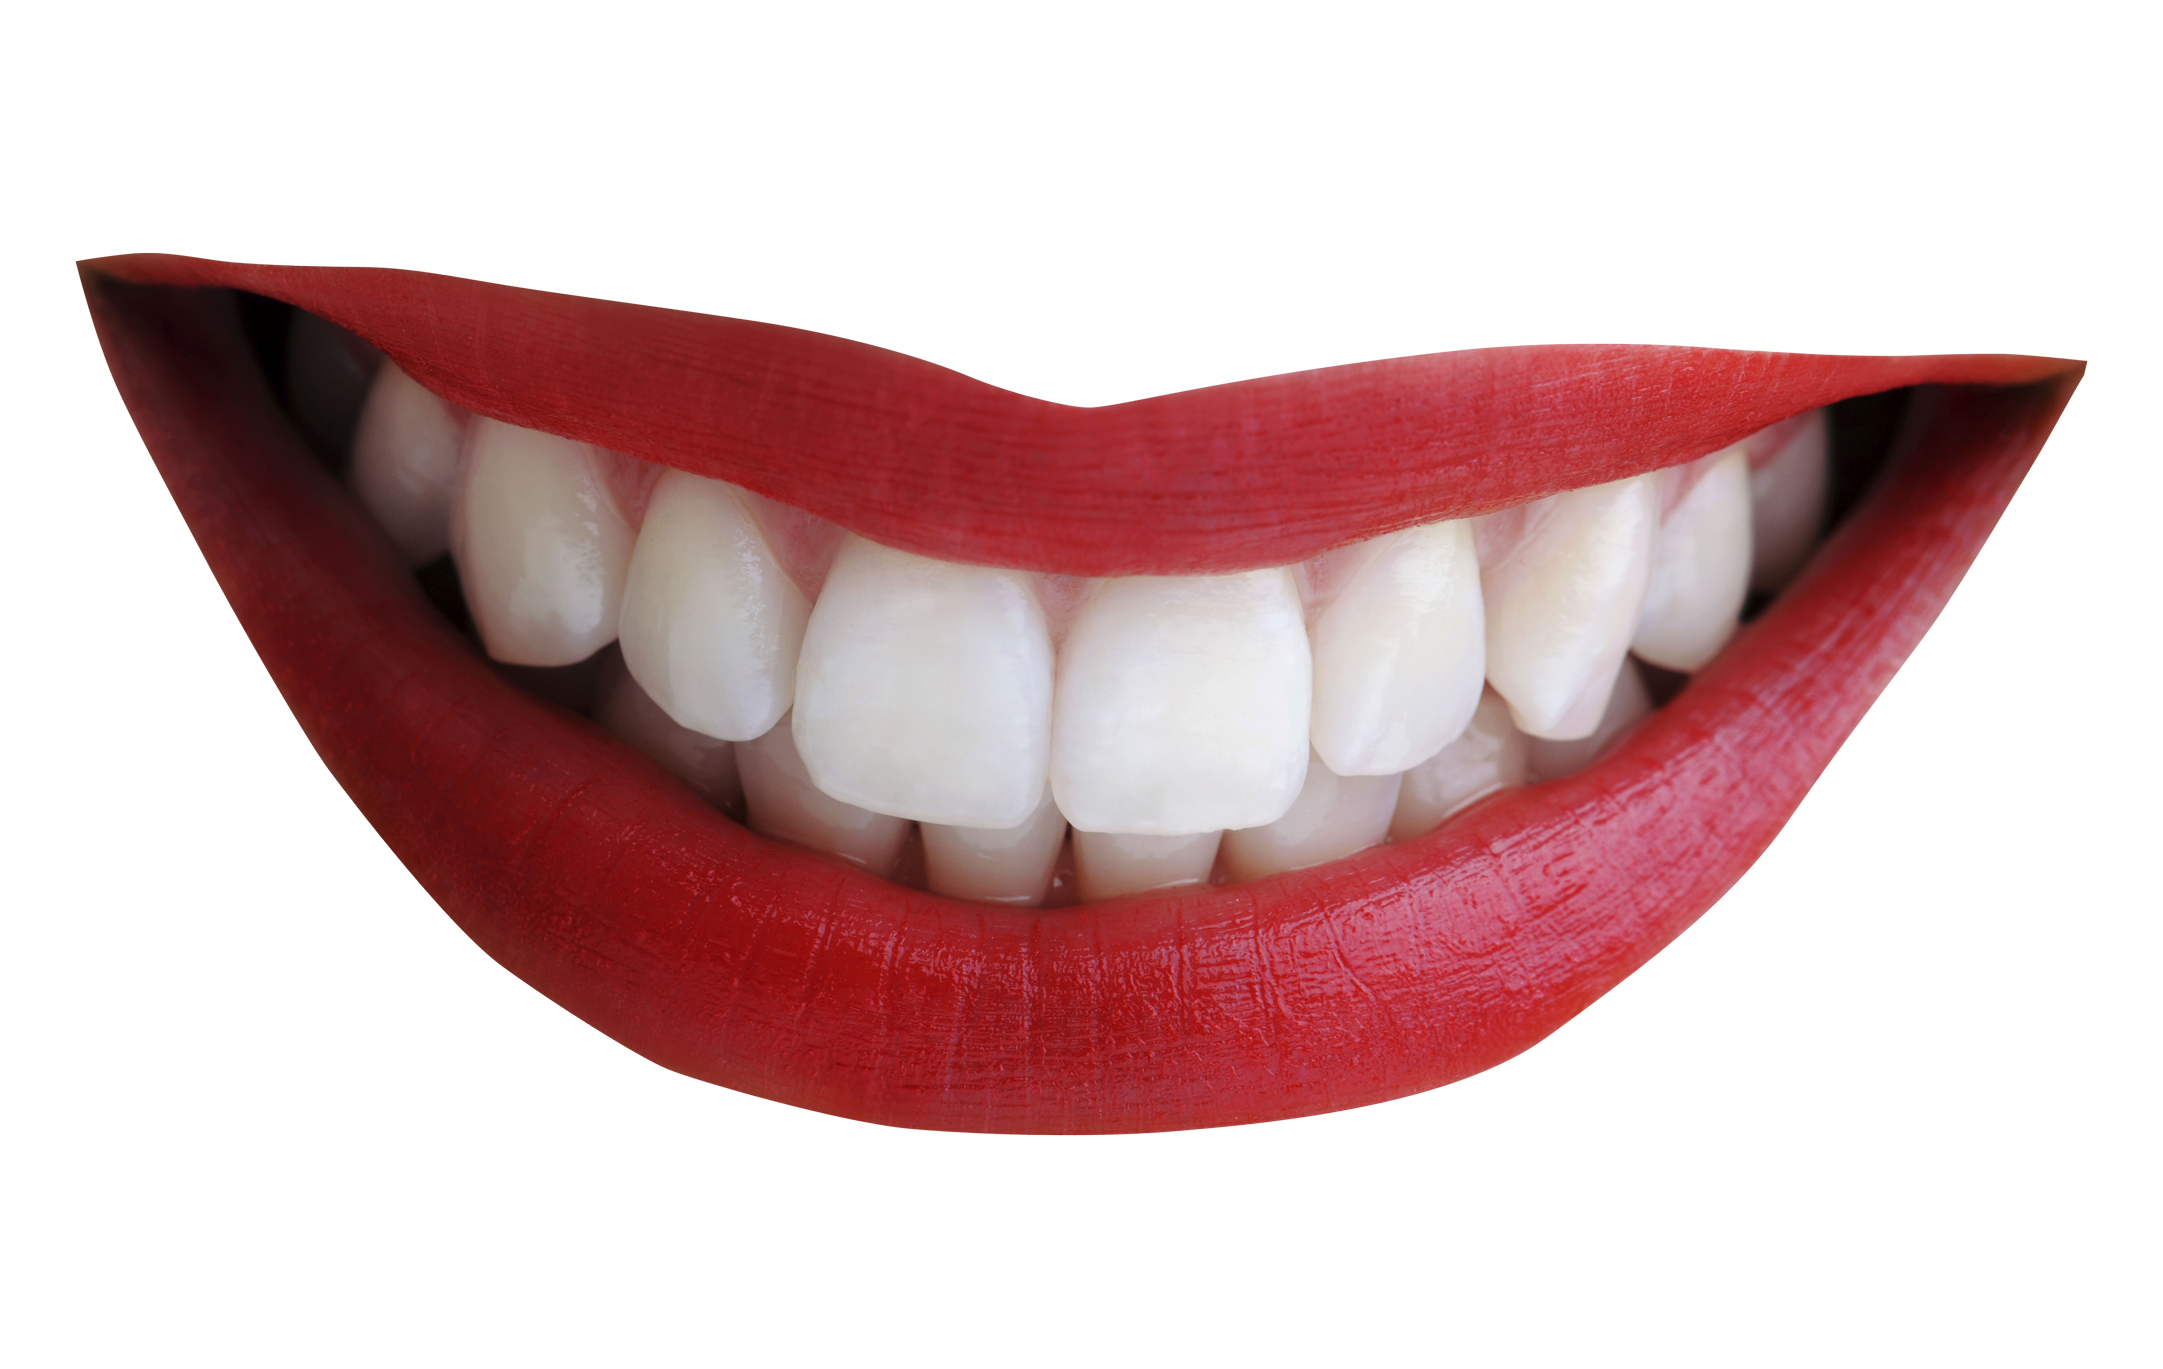 Clipart smile human mouth, Clipart smile human mouth ...